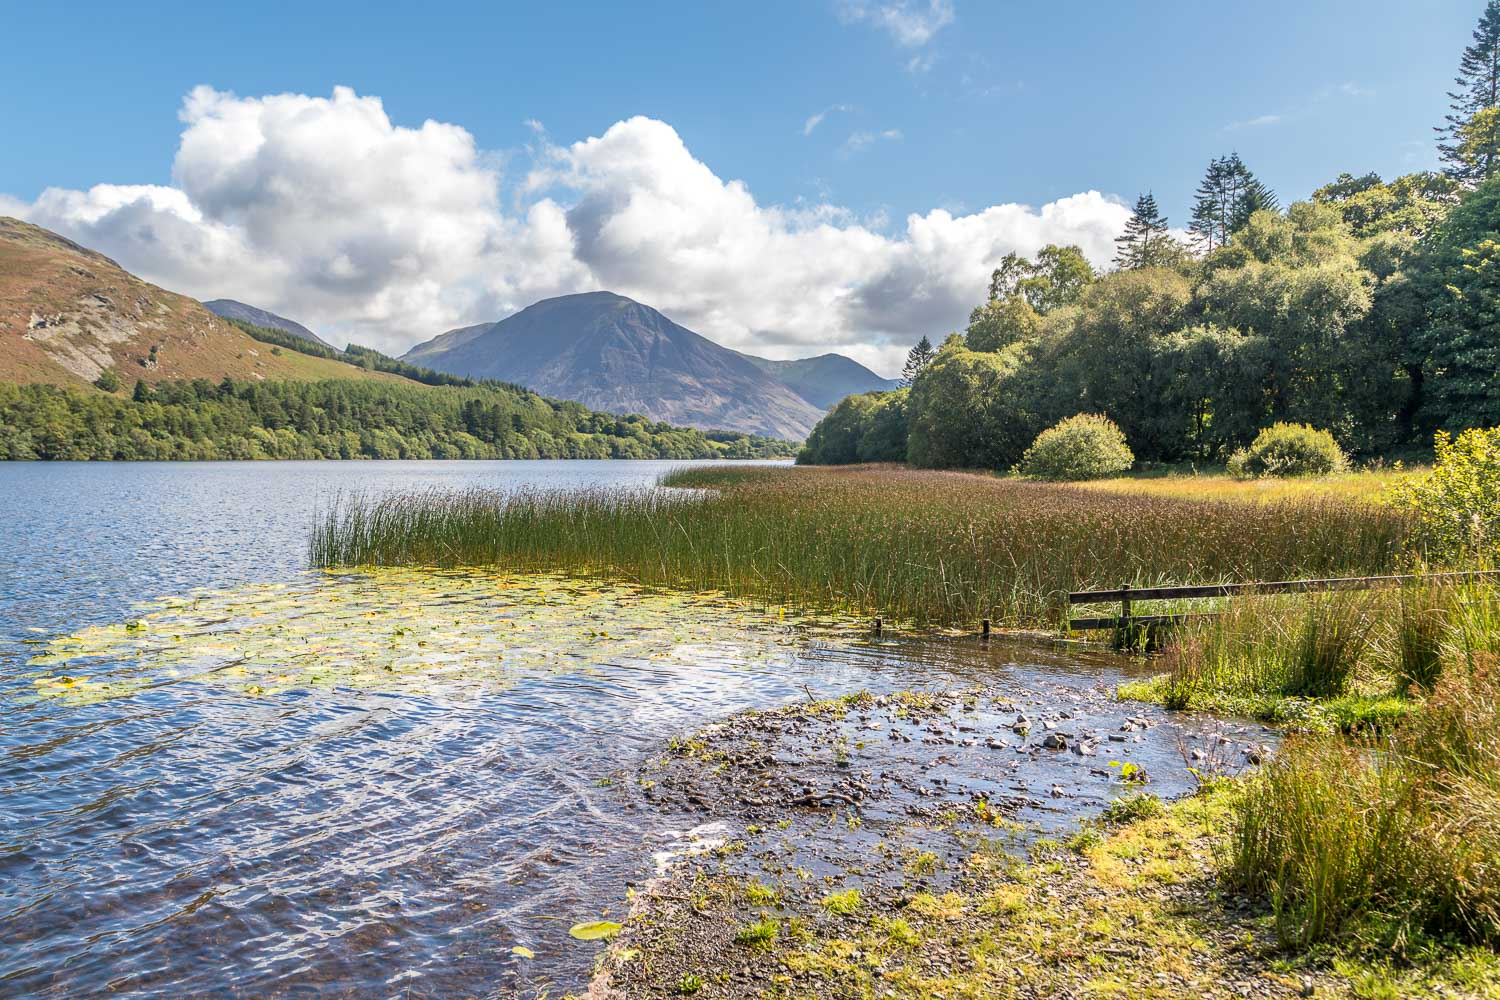 Loweswater views